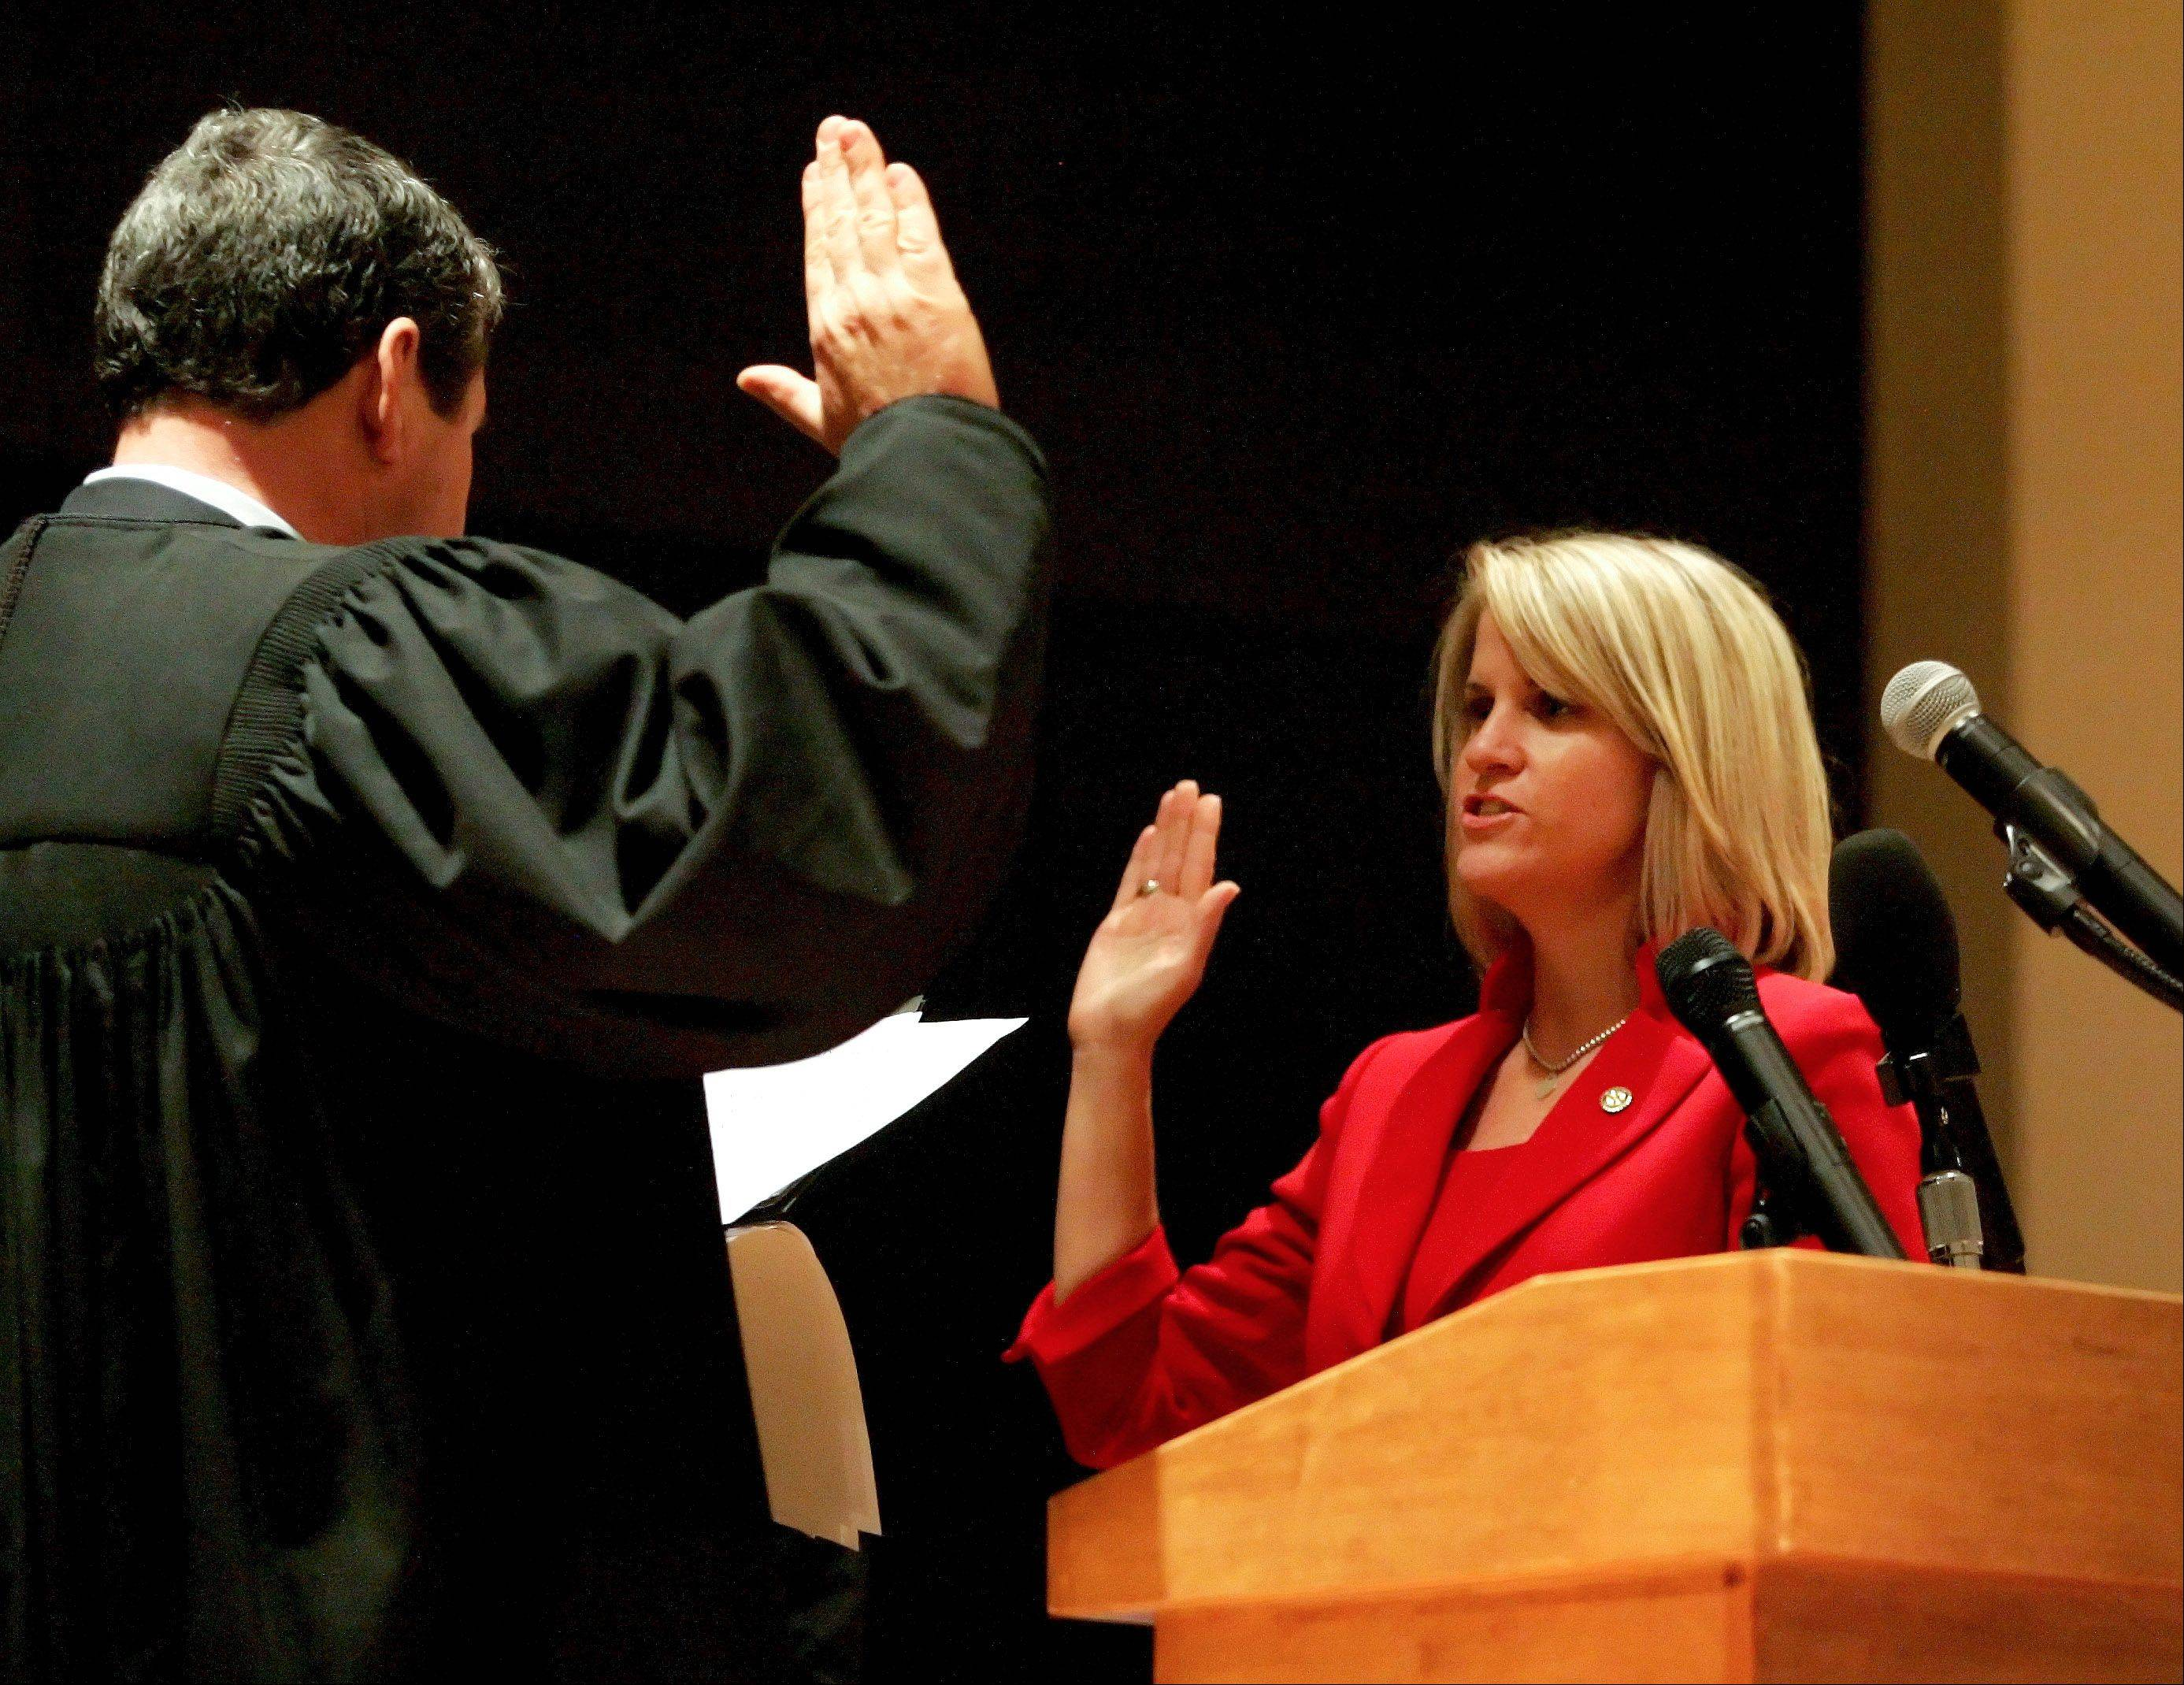 Tonia Khouri gets sworn in as a District 5 board member by Judge John Elsner during the 2012 Inauguration of DuPage County elected officials at the Jack T. Knuepfer Administration building in Wheaton on Monday.